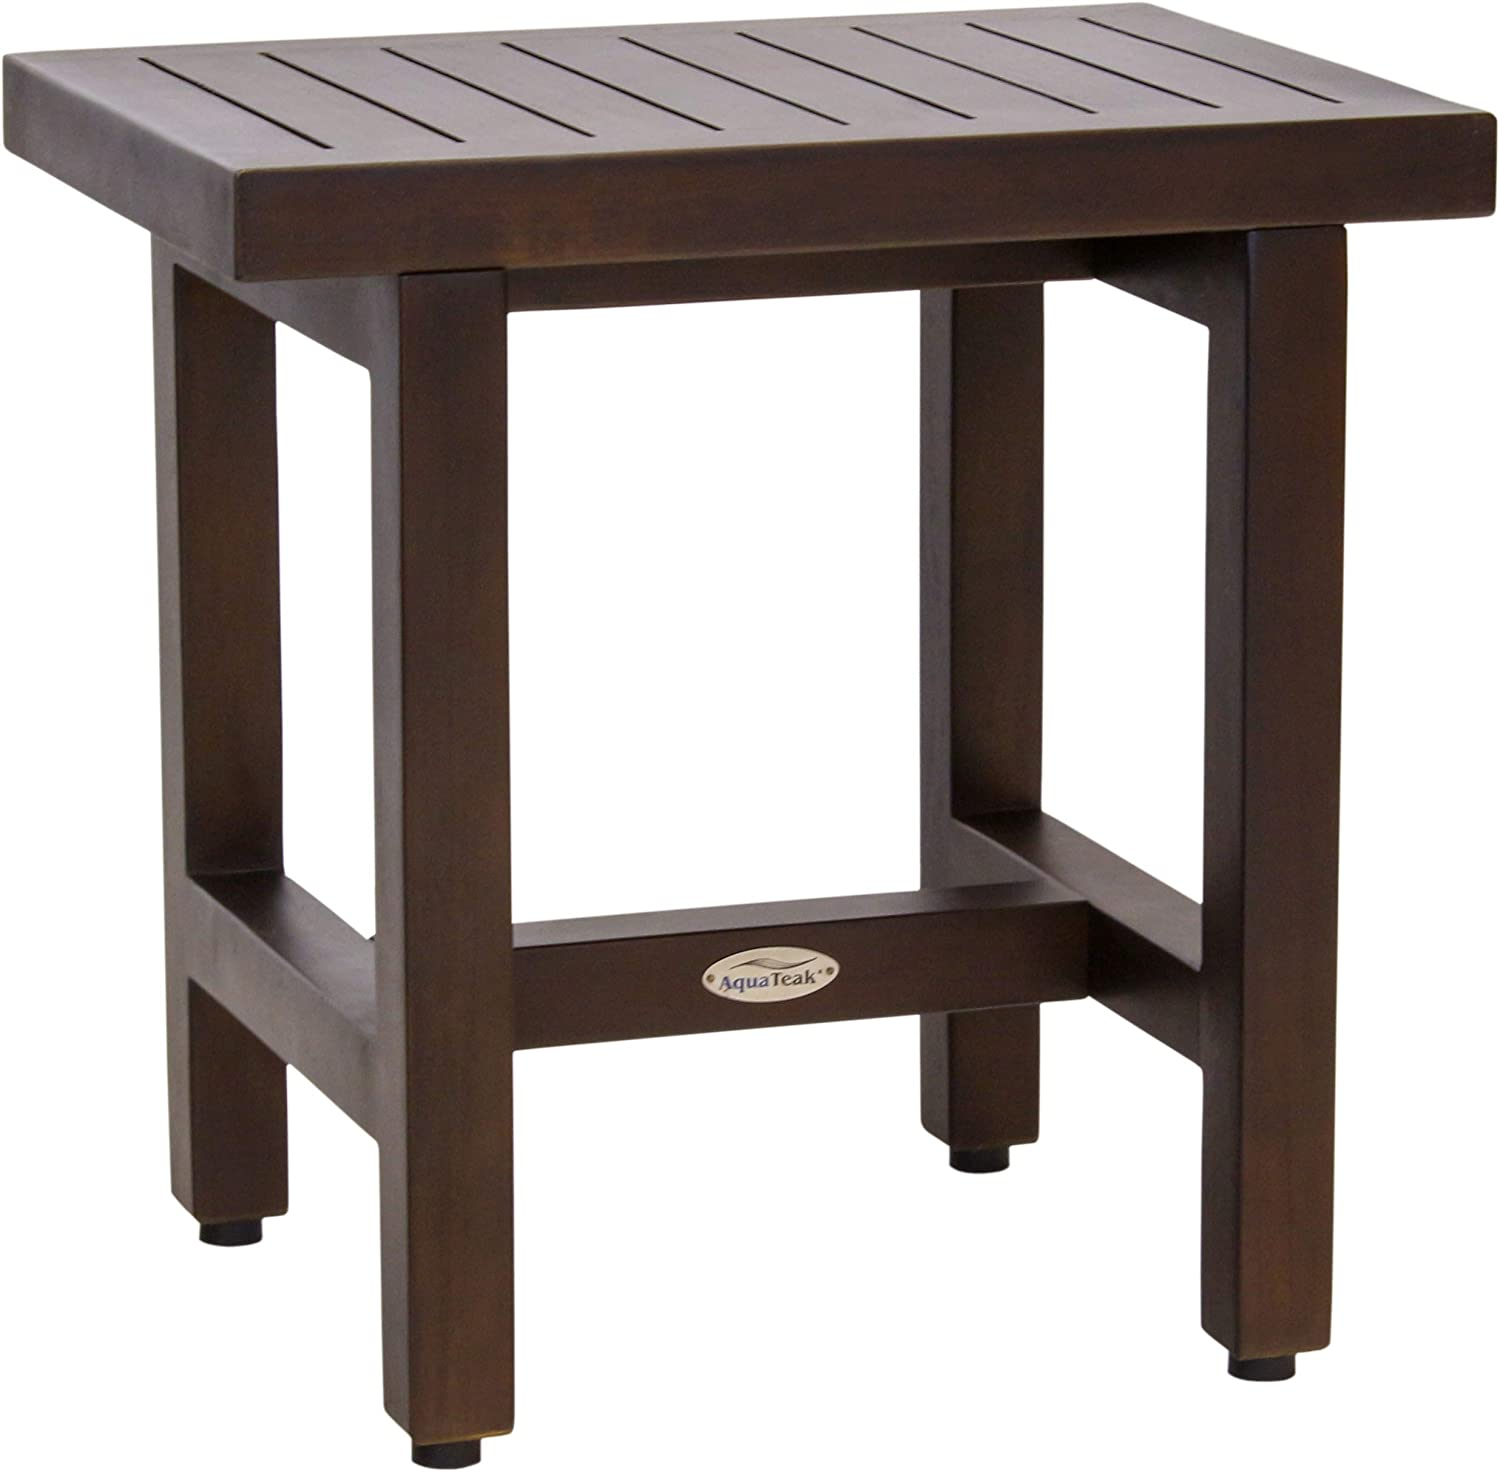 "AquaTeak Patented 18"" Spa Lotus Mocha Teak Shower Bench"